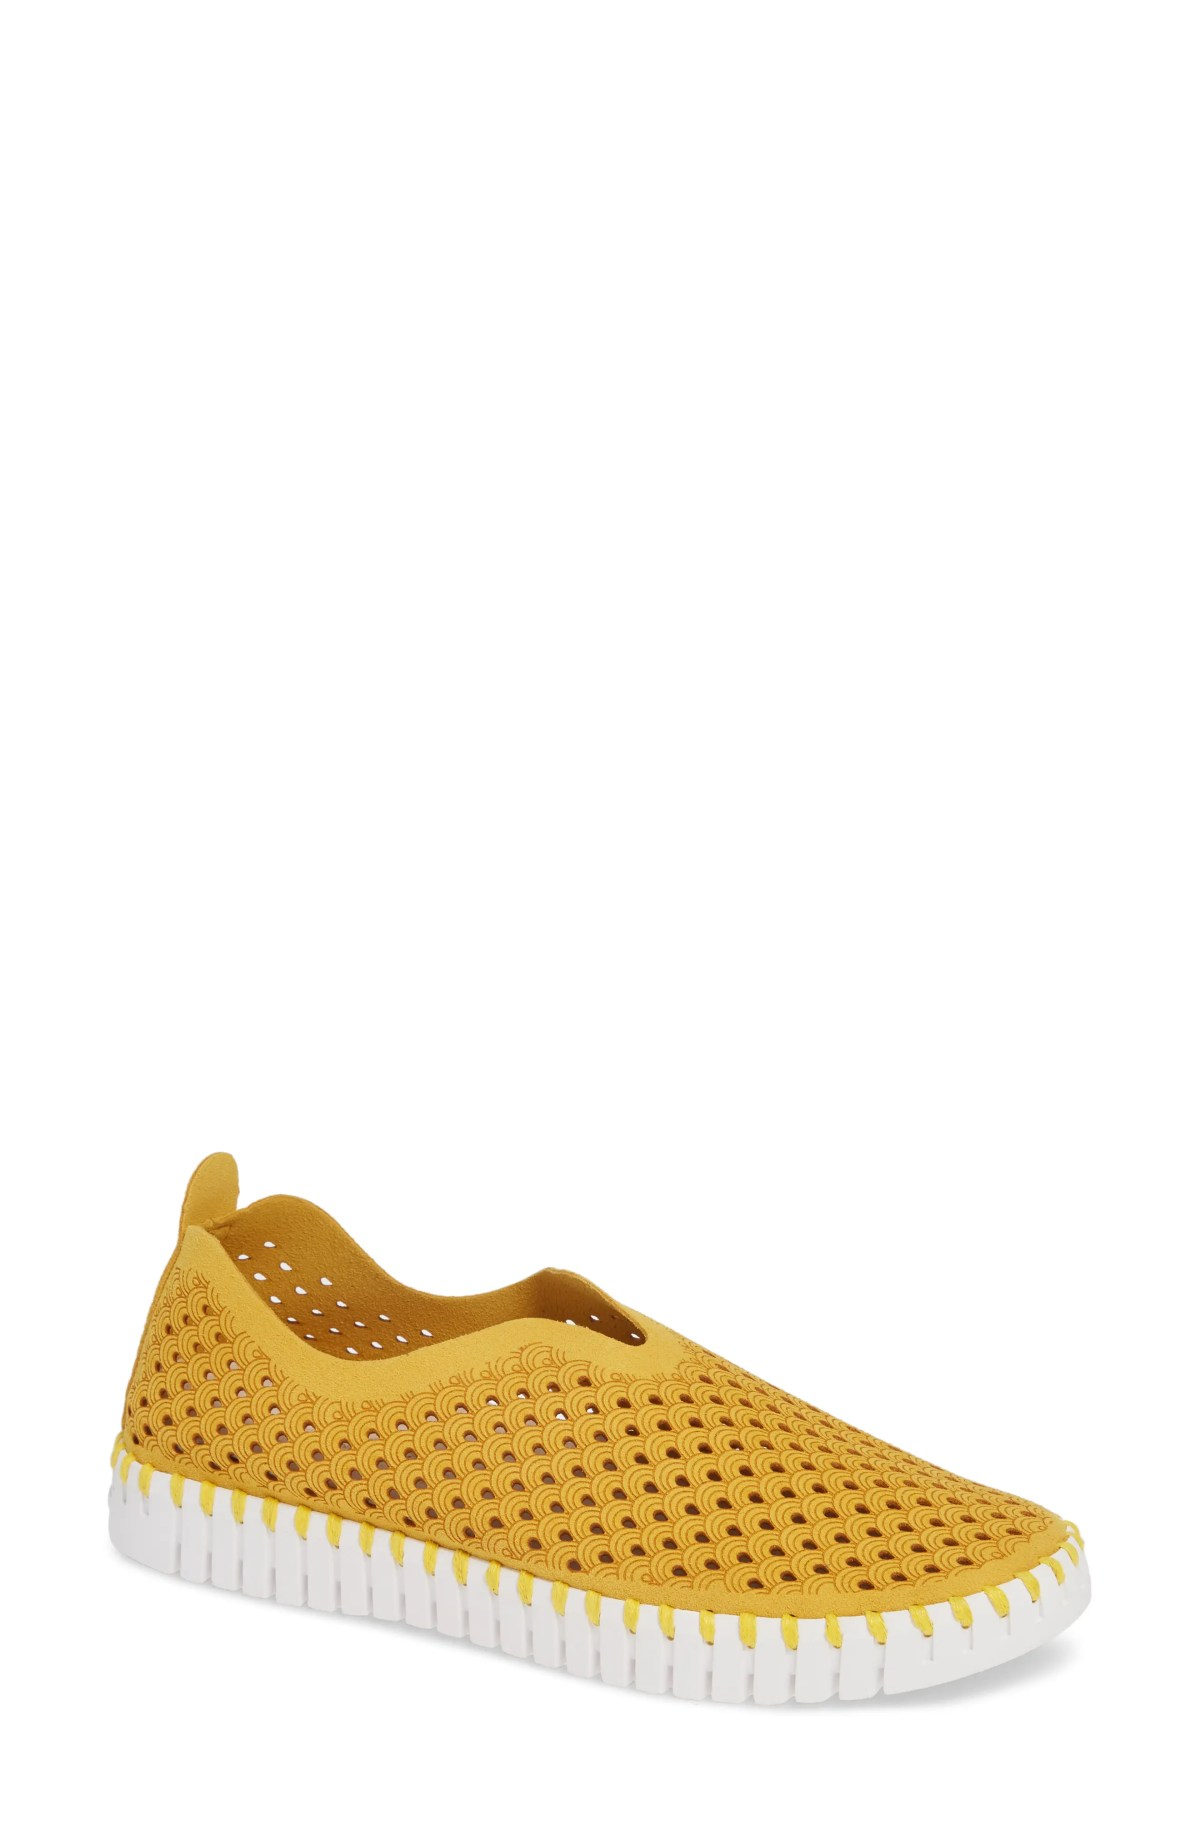 ILSE JACOBSEN Tulip 139 Perforated Slip-On Sneaker, Main, color, GOLDEN ROD FABRIC